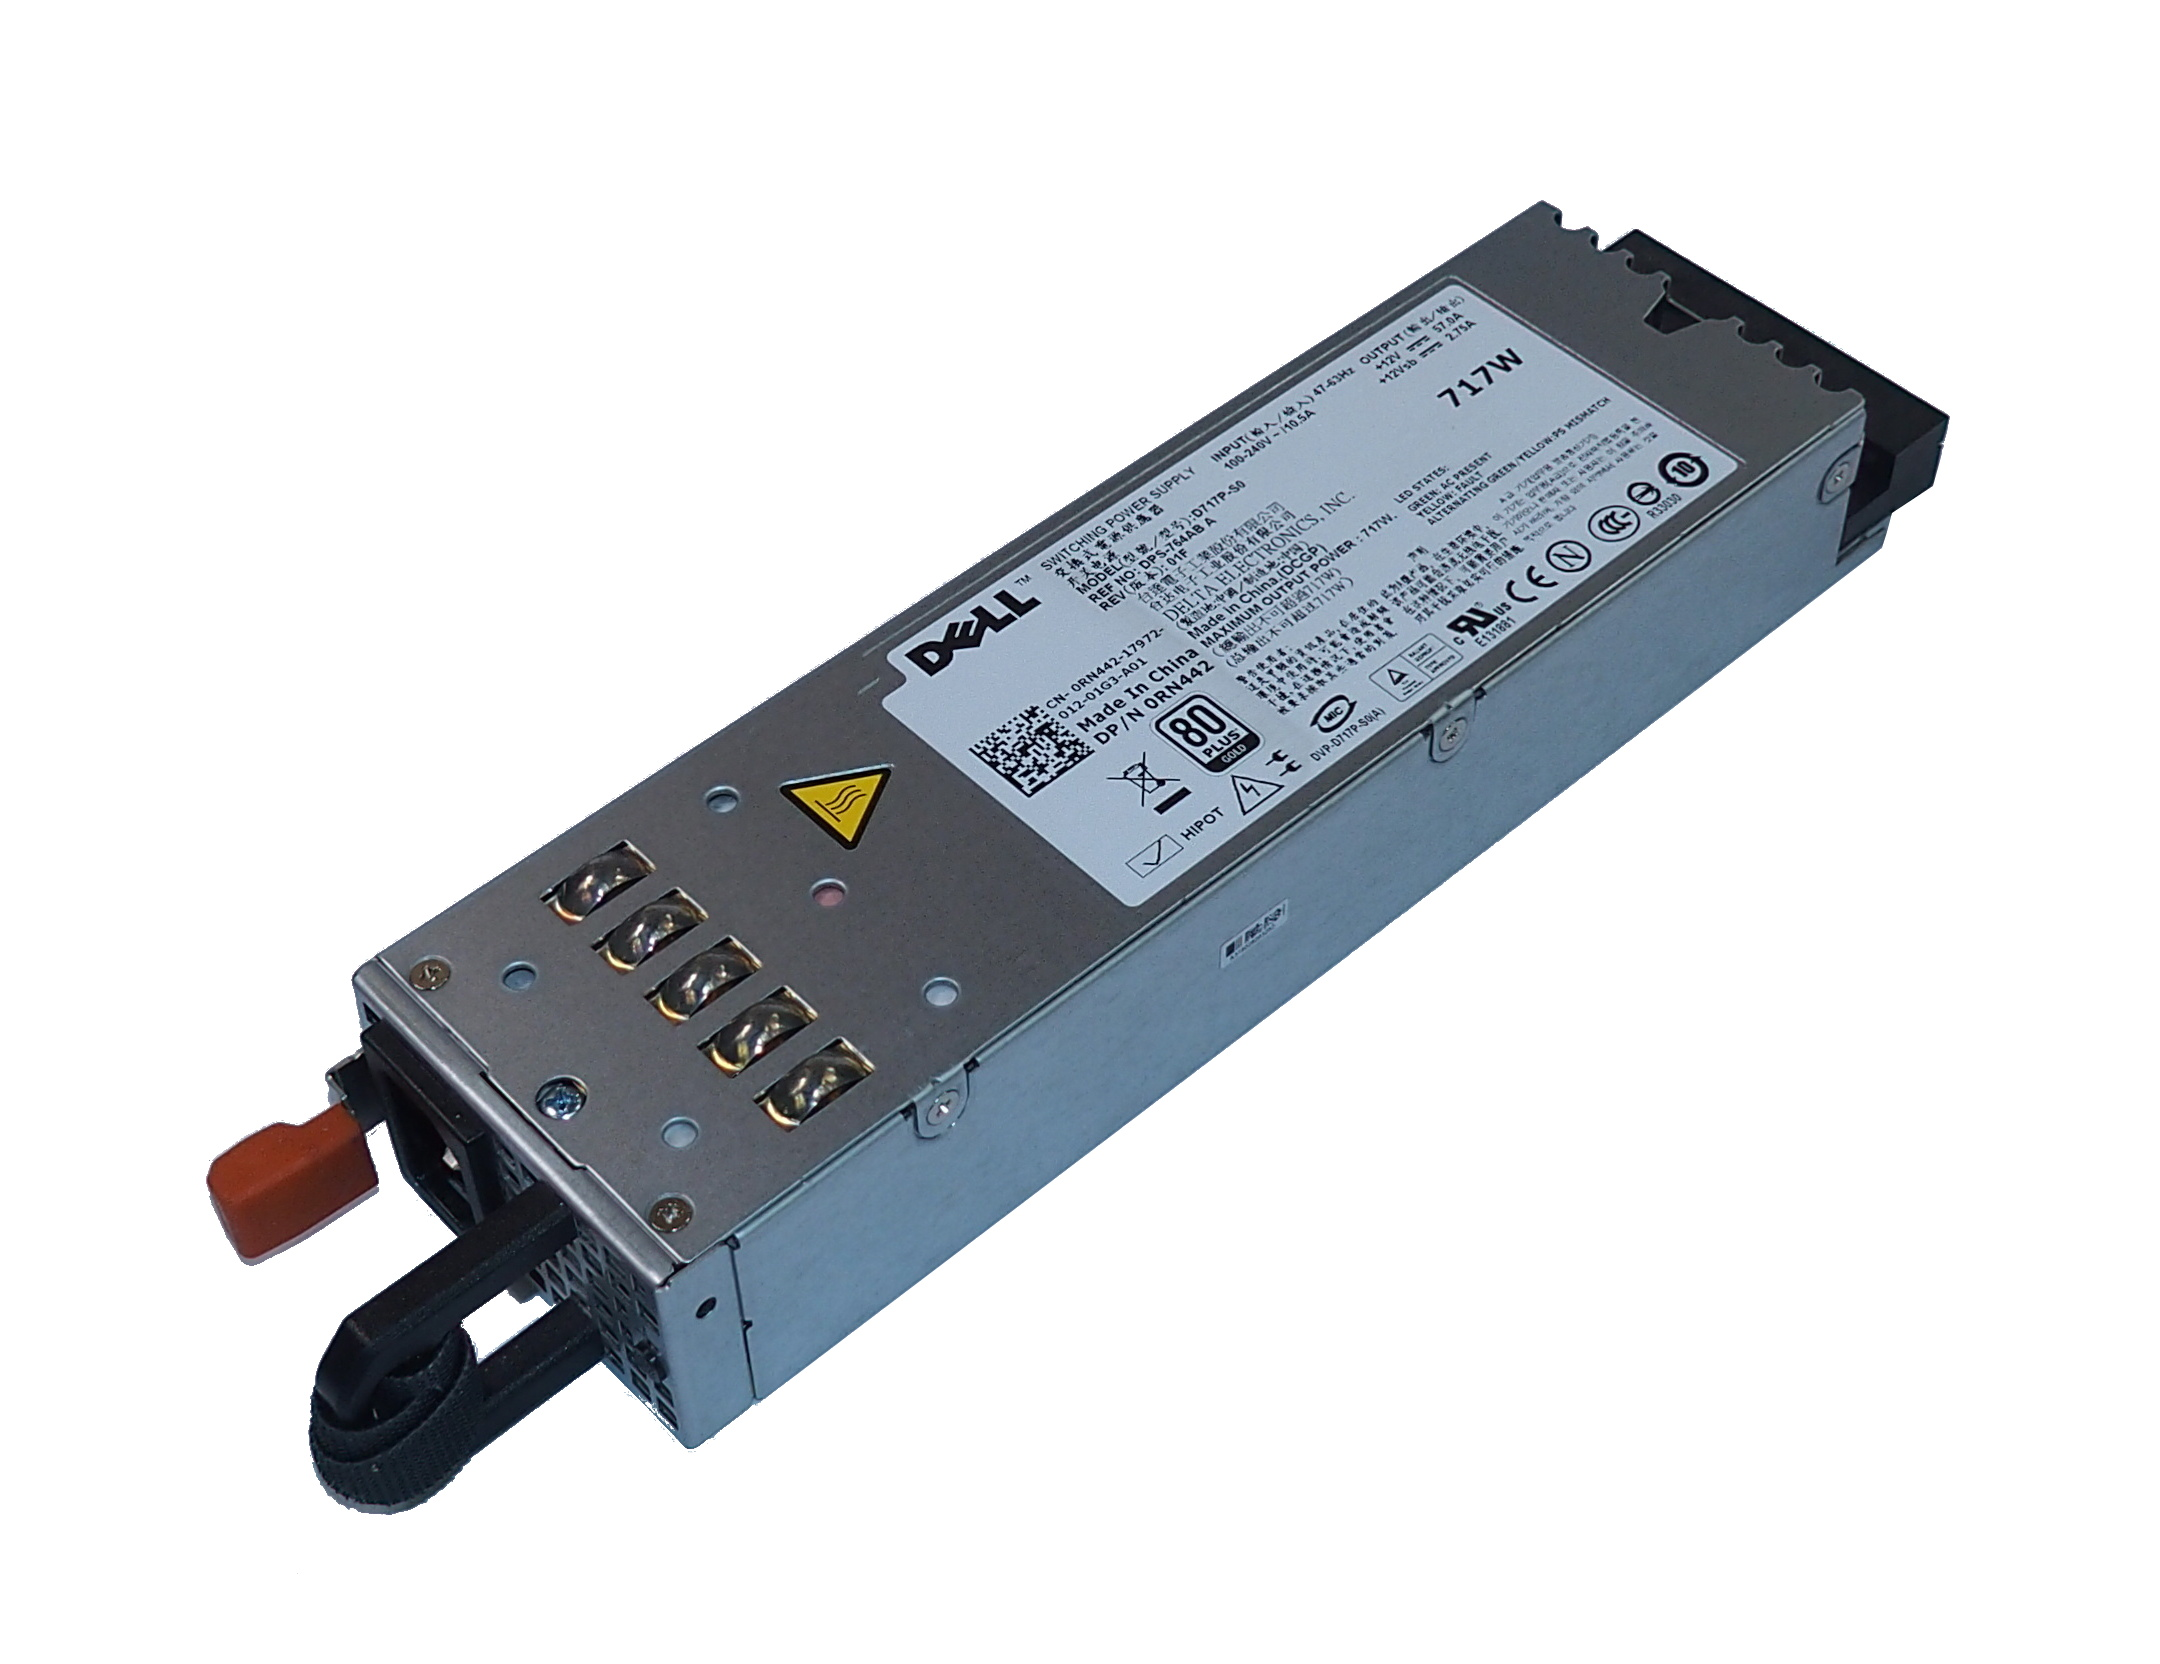 Dell RN442 D717P-S0 PowerEdge R610 717W Switching Power Supply